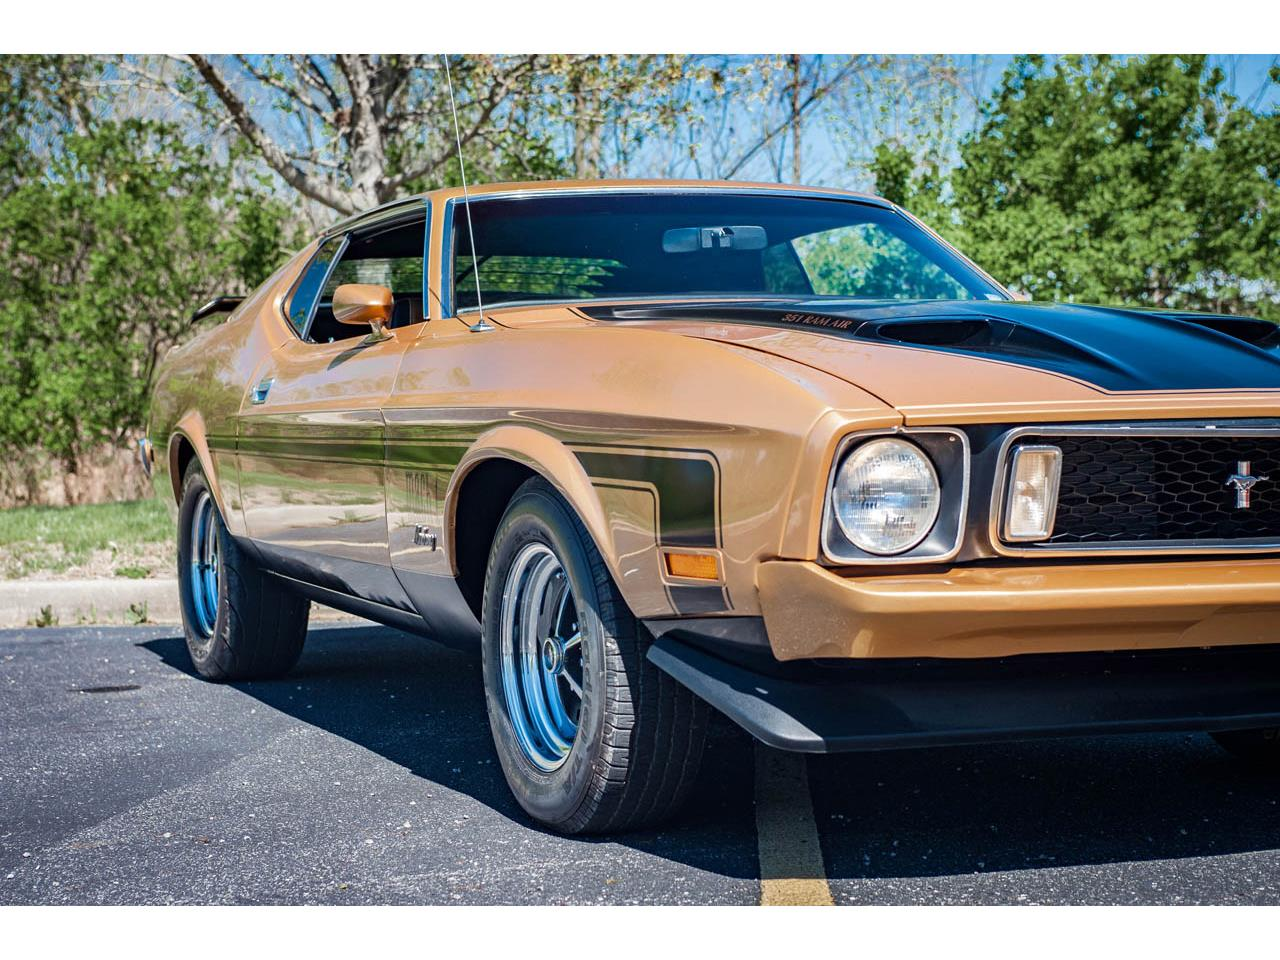 Large Picture of '73 Mustang located in O'Fallon Illinois Offered by Gateway Classic Cars - St. Louis - QB8T